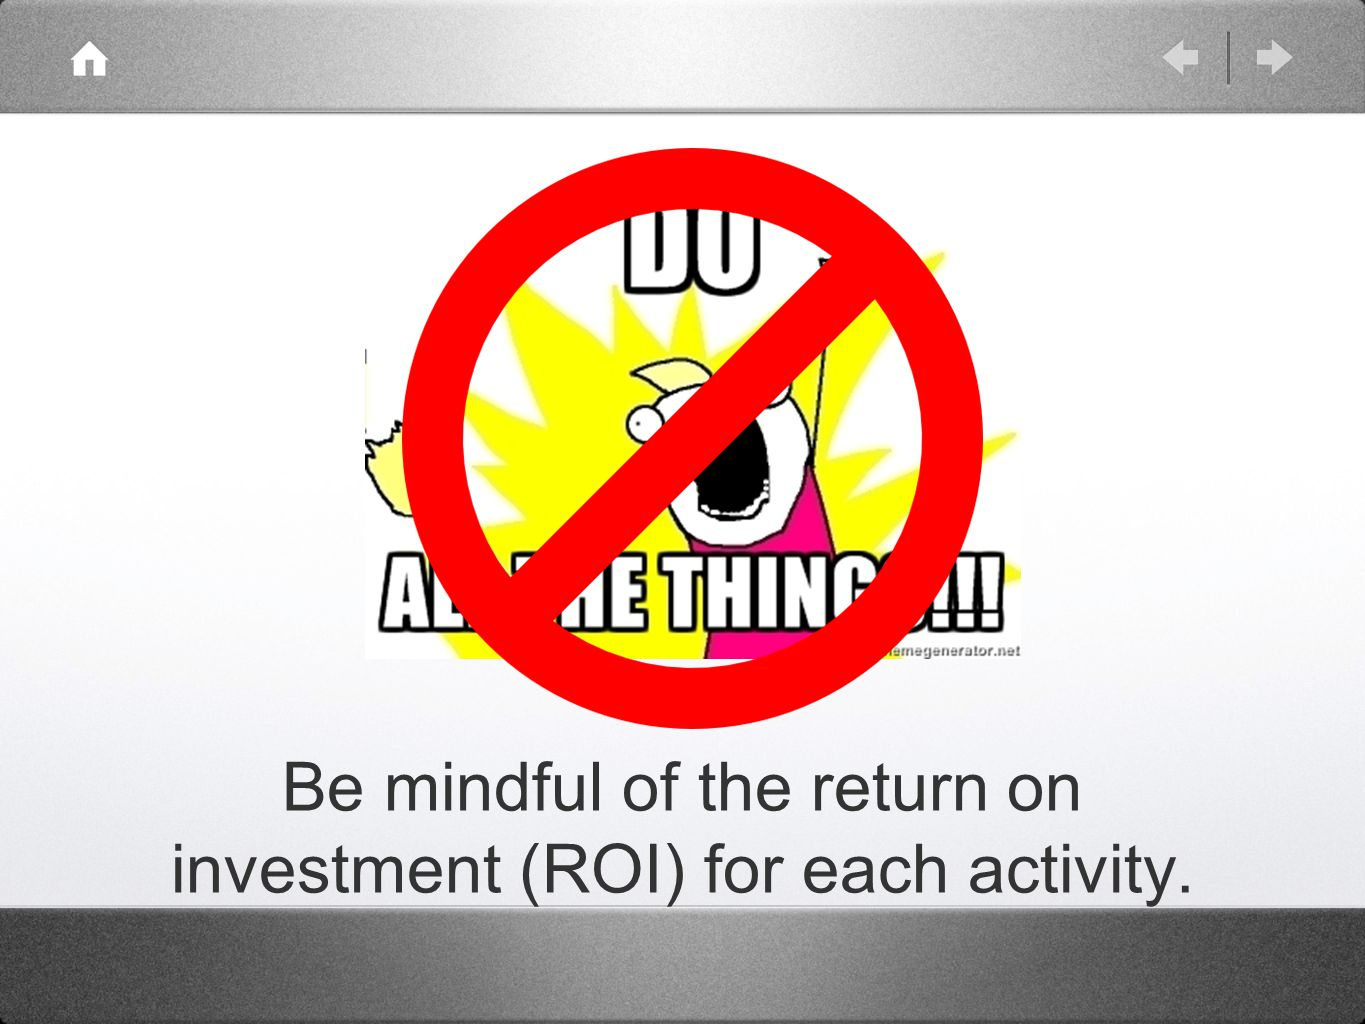 Be mindful of the return on investment (ROI) for each activity.